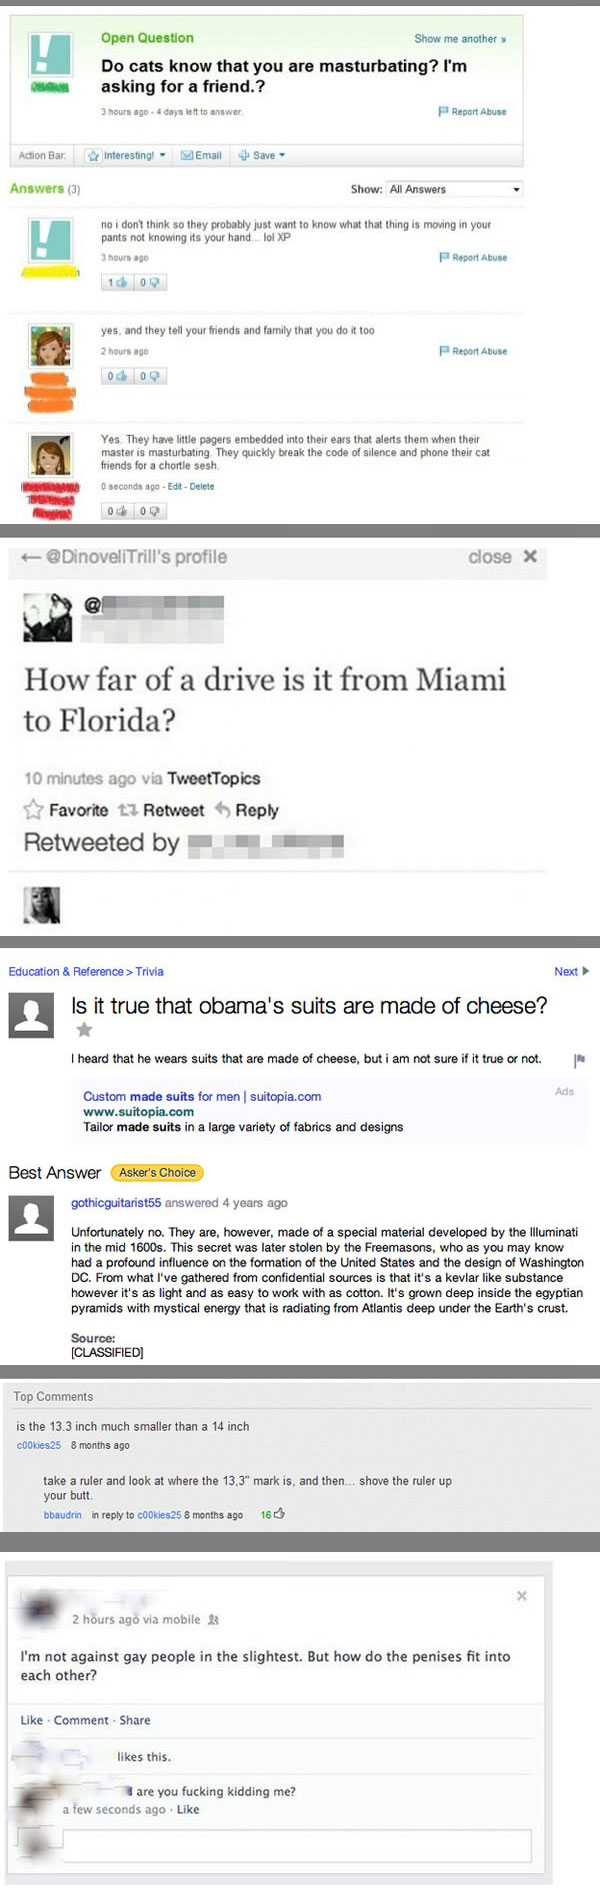 funny-dumb-questions-Yahoo-Obama-suit-cheese